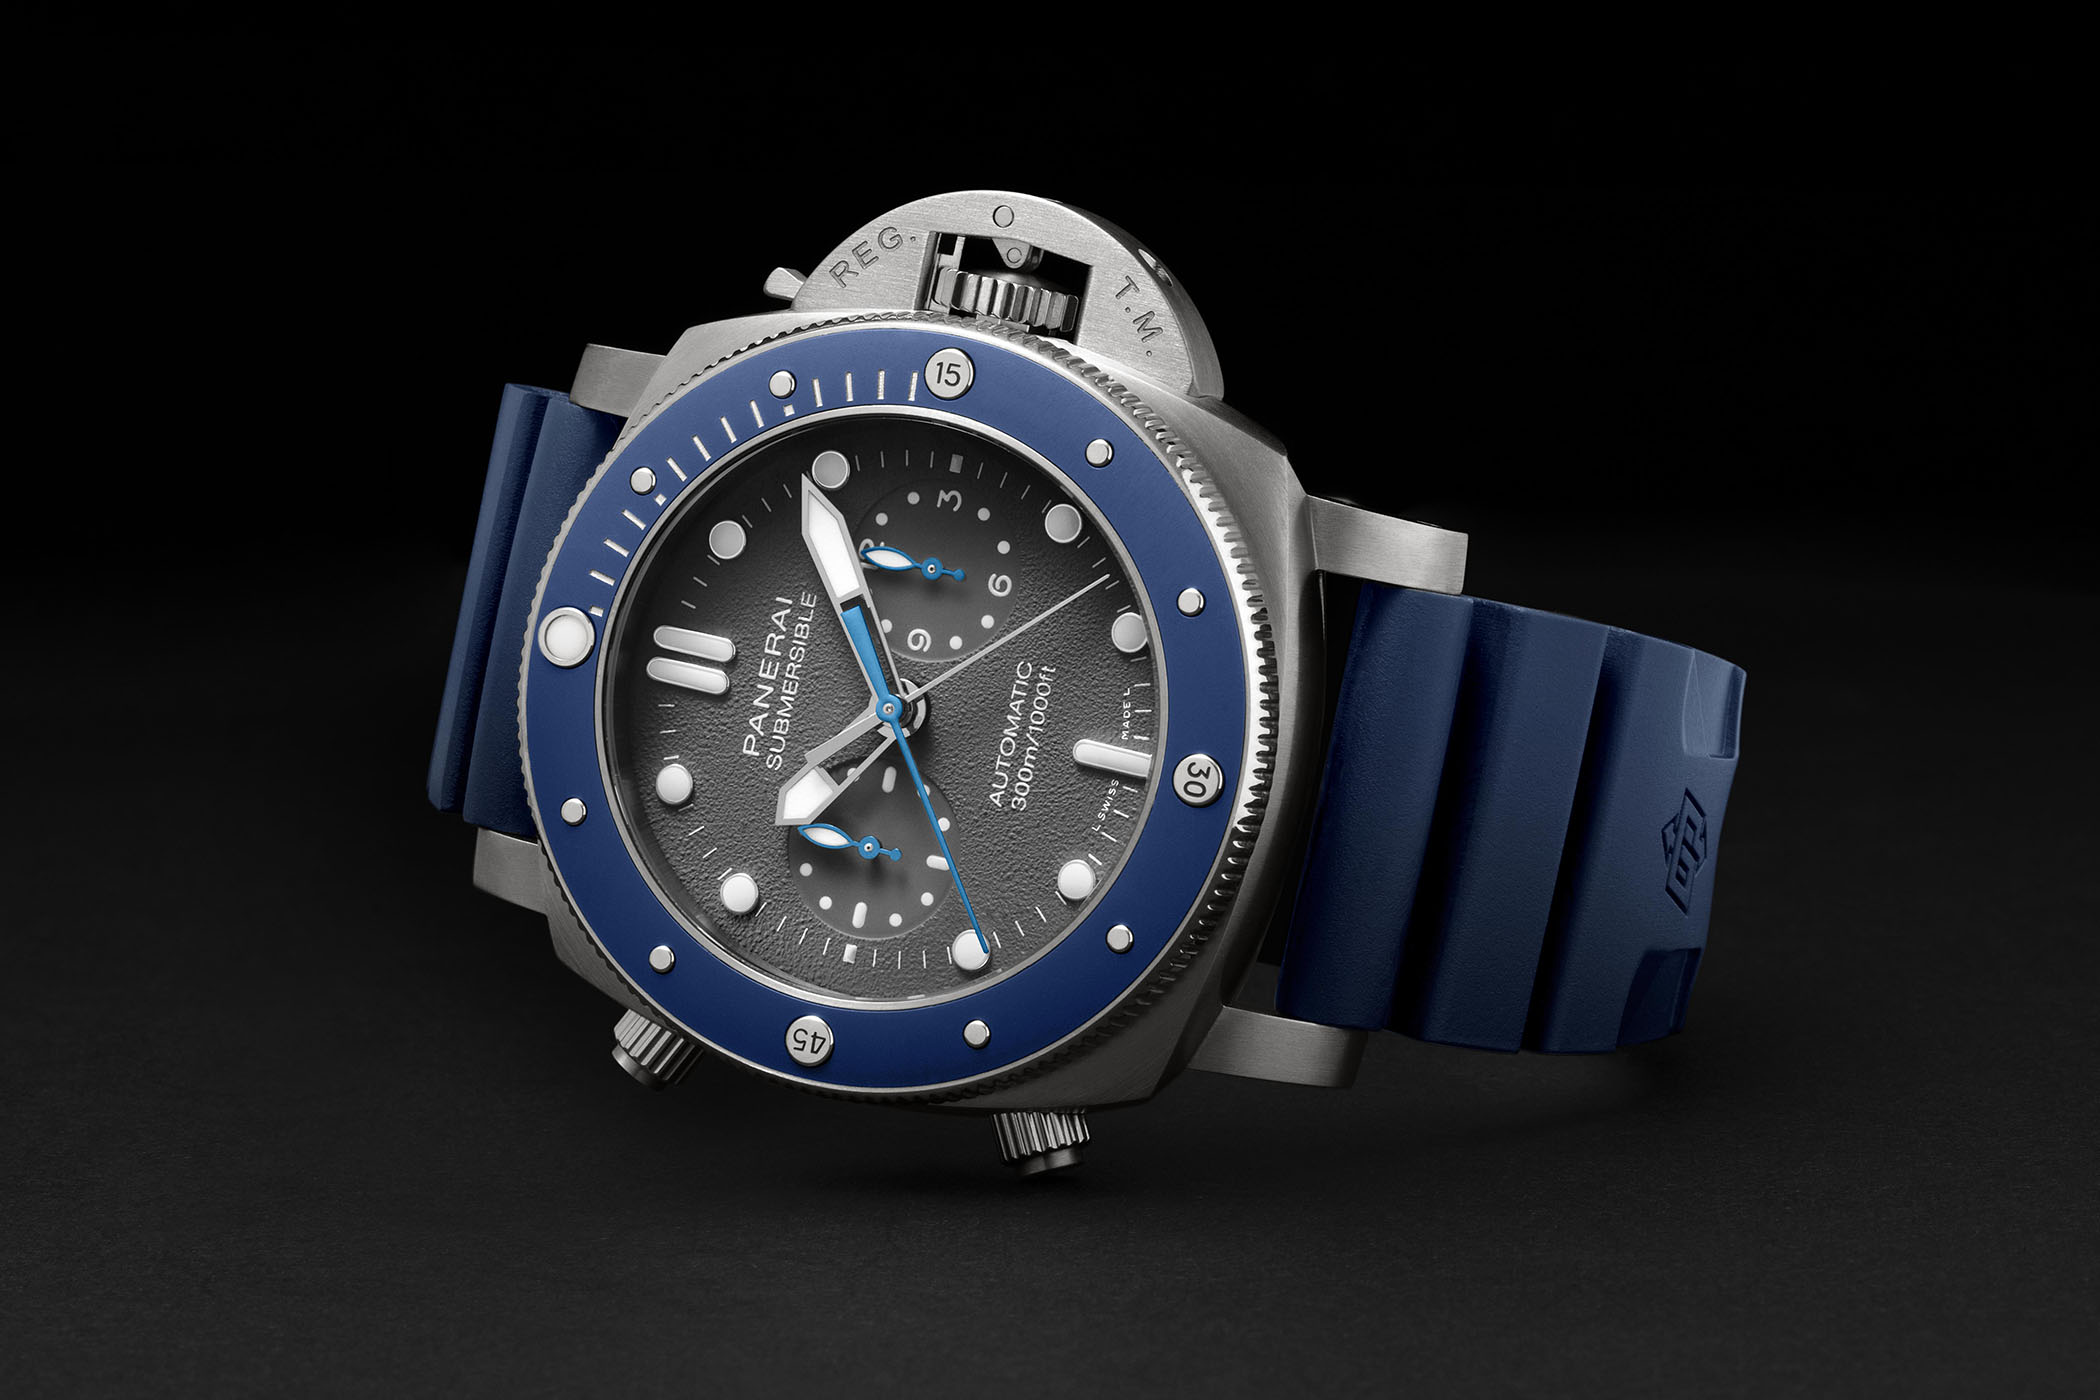 Panerai Submersible Chrono Guillame Néry Edition